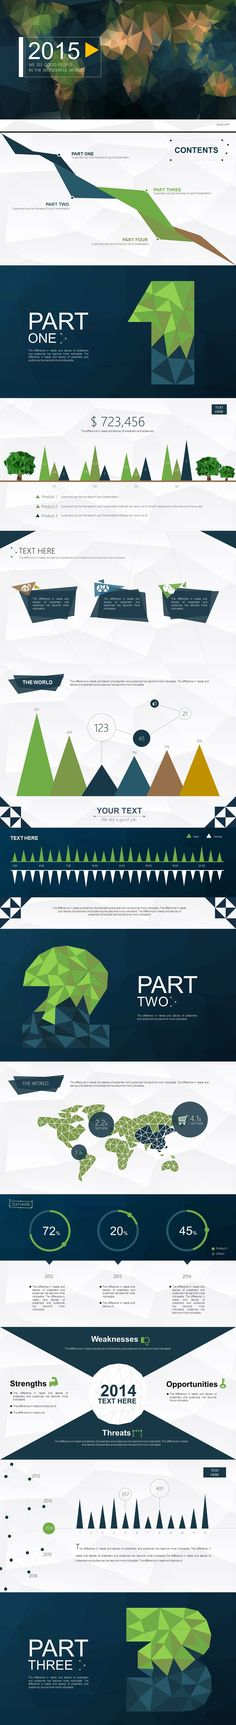 Visualisation Presentation   Low Poly Template (Forest) on Behance